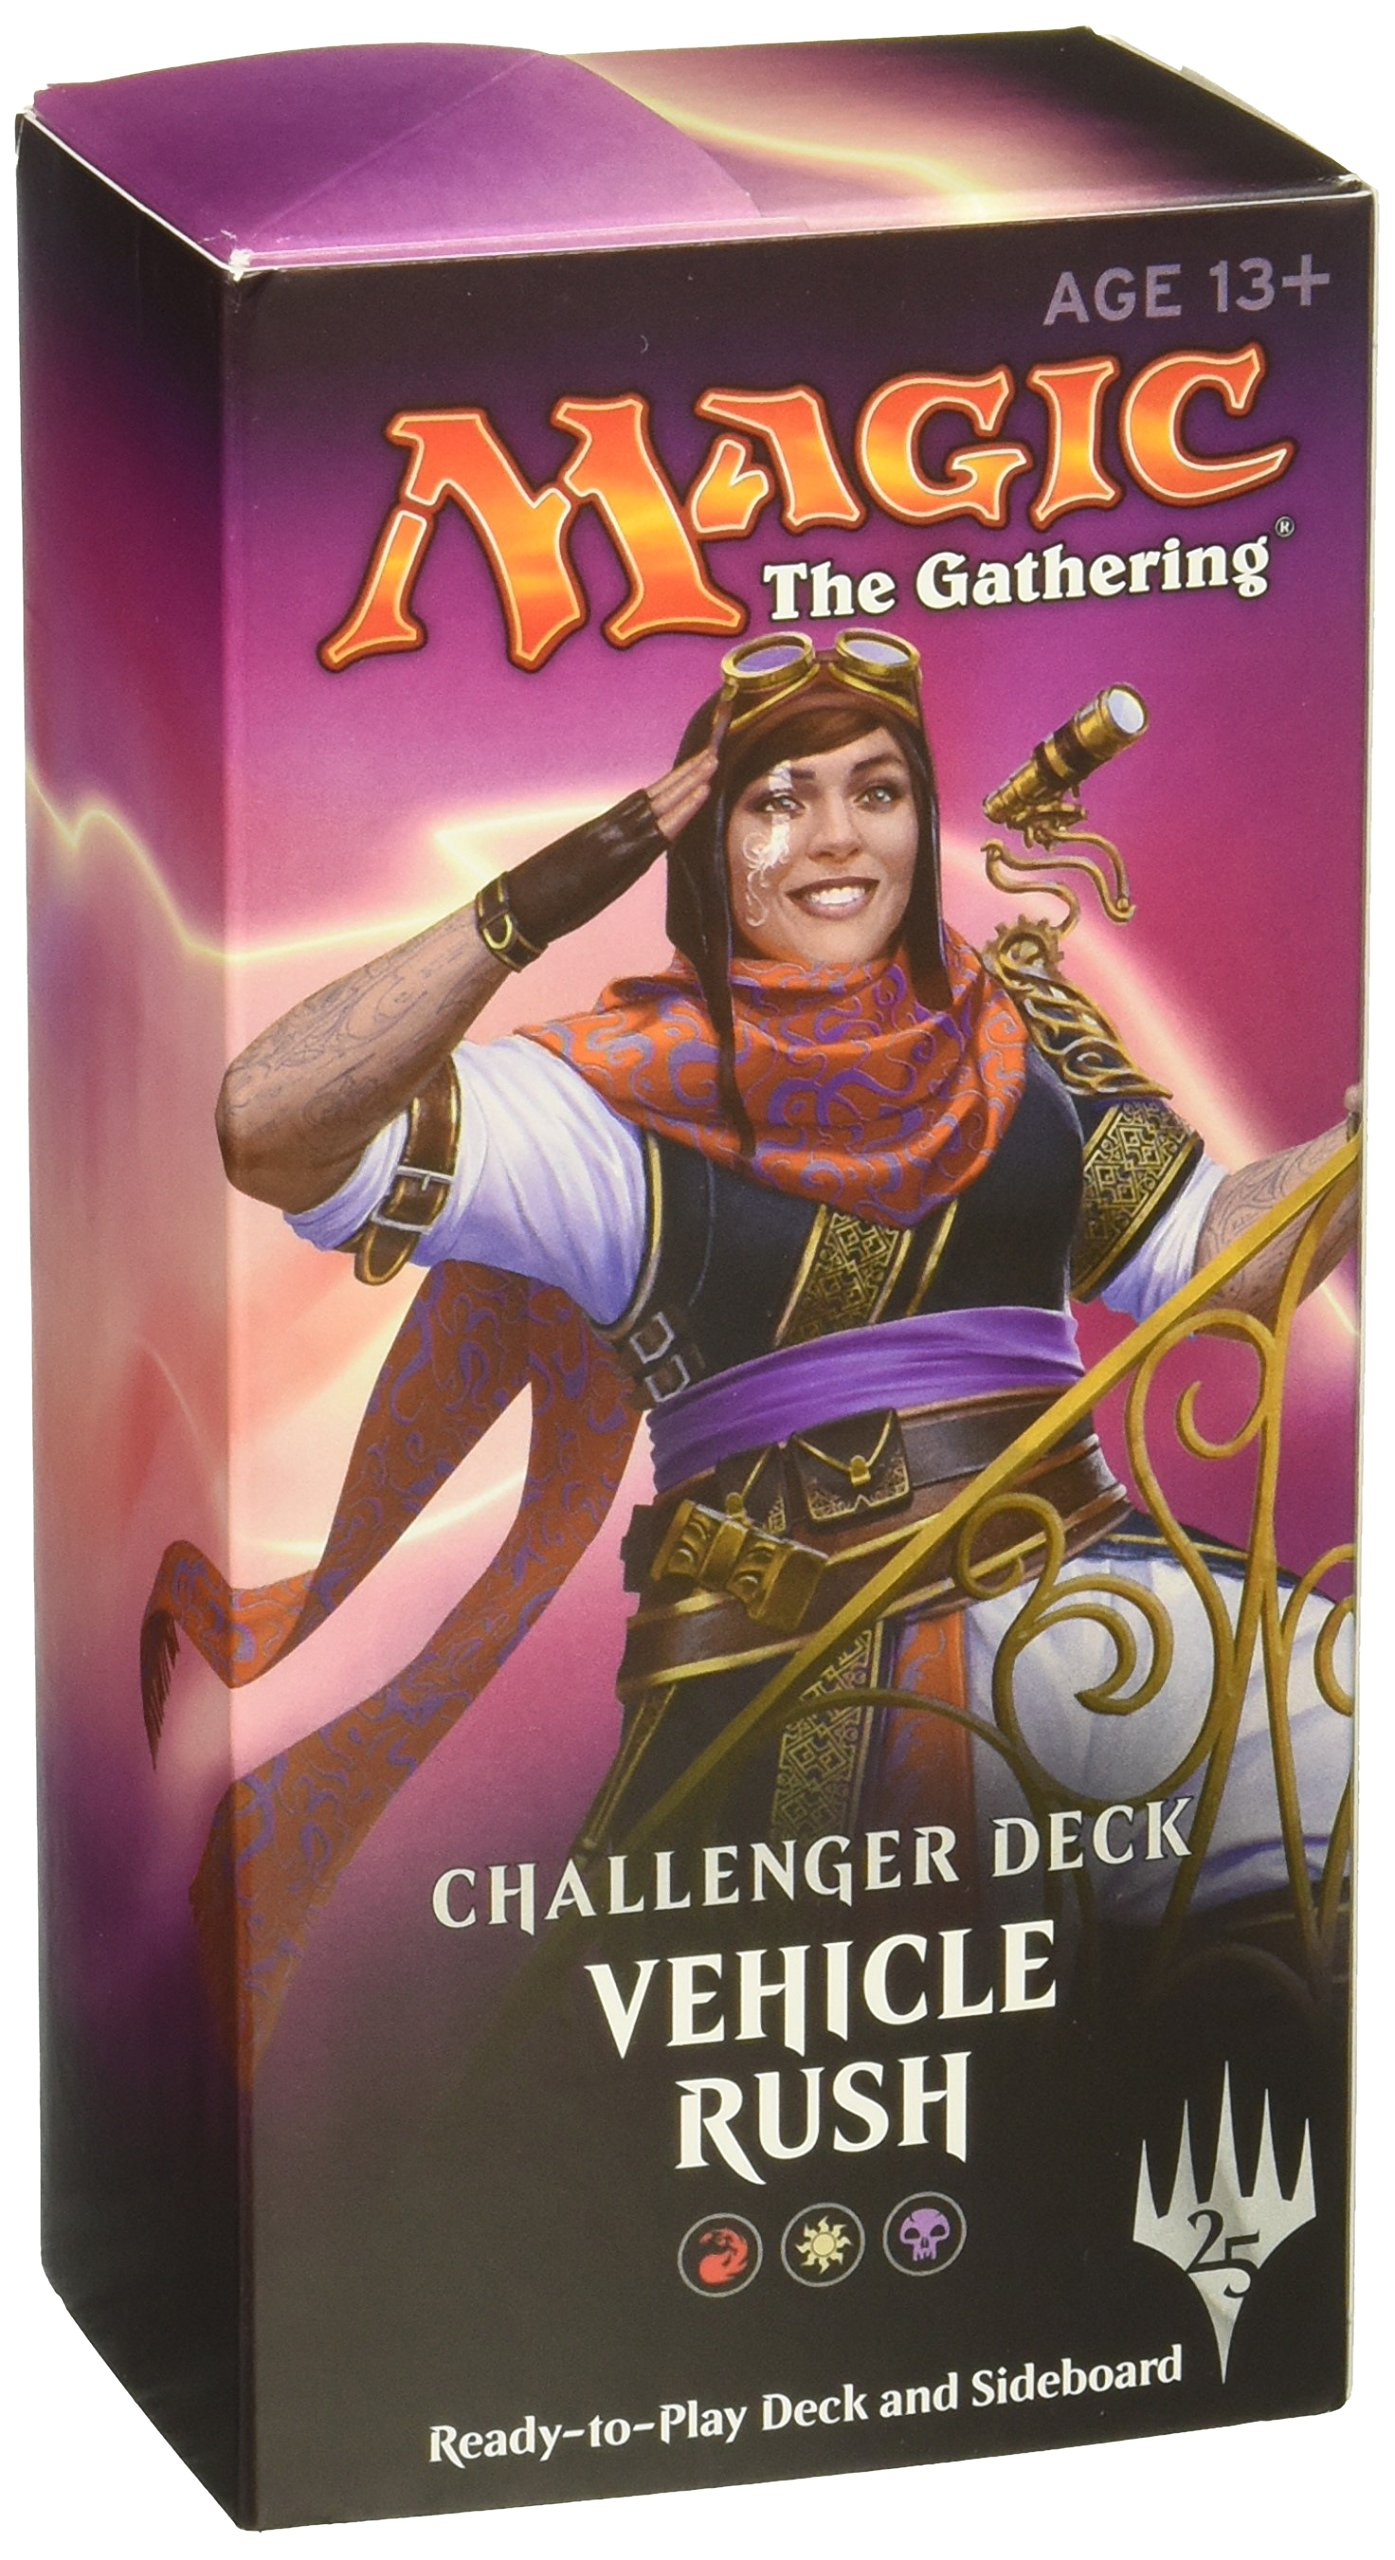 Vehicle Rush MTG Magic The Gathering Challenger Deck - 75 cards by Magic: the Gathering